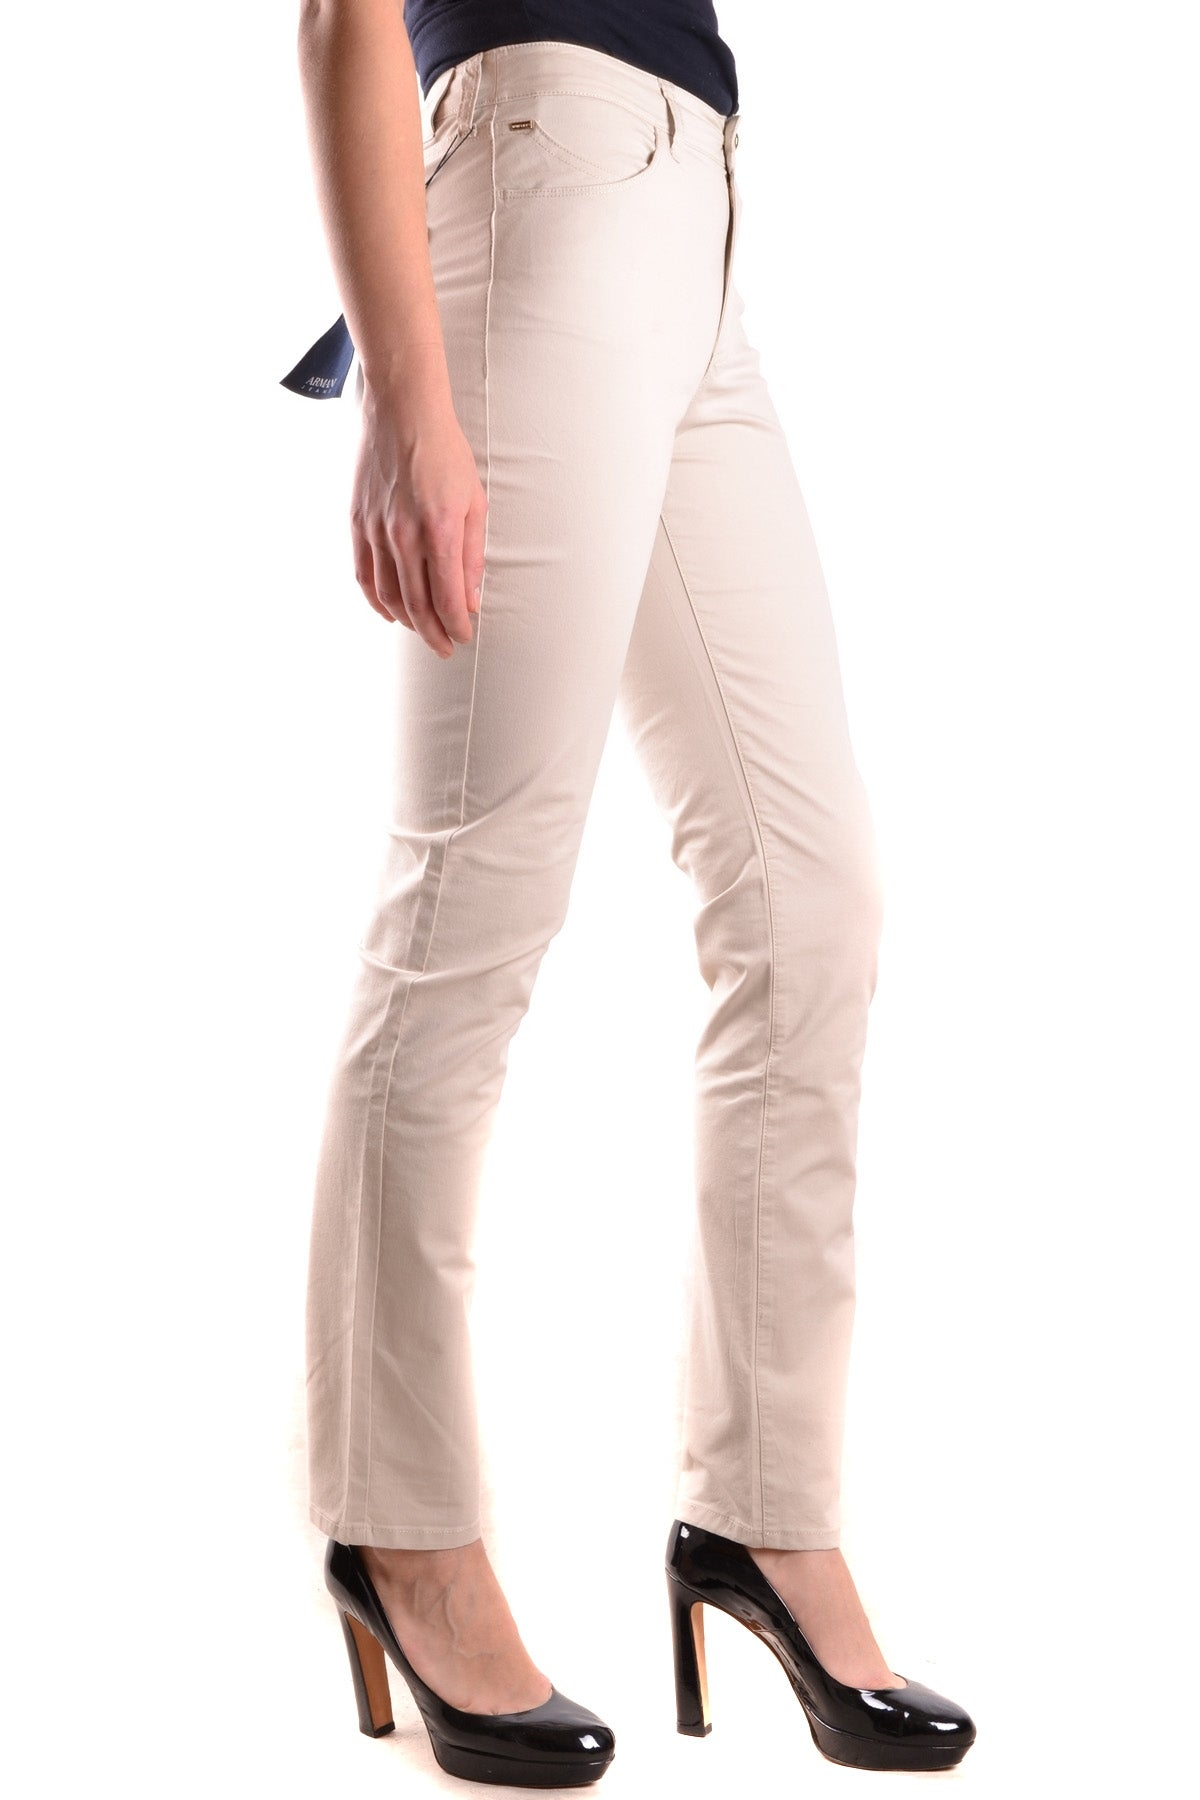 Jeans Armani Jeans-Jeans - WOMAN-Product Details Terms: New With LabelYear: 2017Main Color: BeigeGender: WomanMade In: IndiaSize: UsSeason: Spring / SummerClothing Type: JeansComposition: Cotton 81%, Elastane 2%, Polyester 15%-Keyomi-Sook